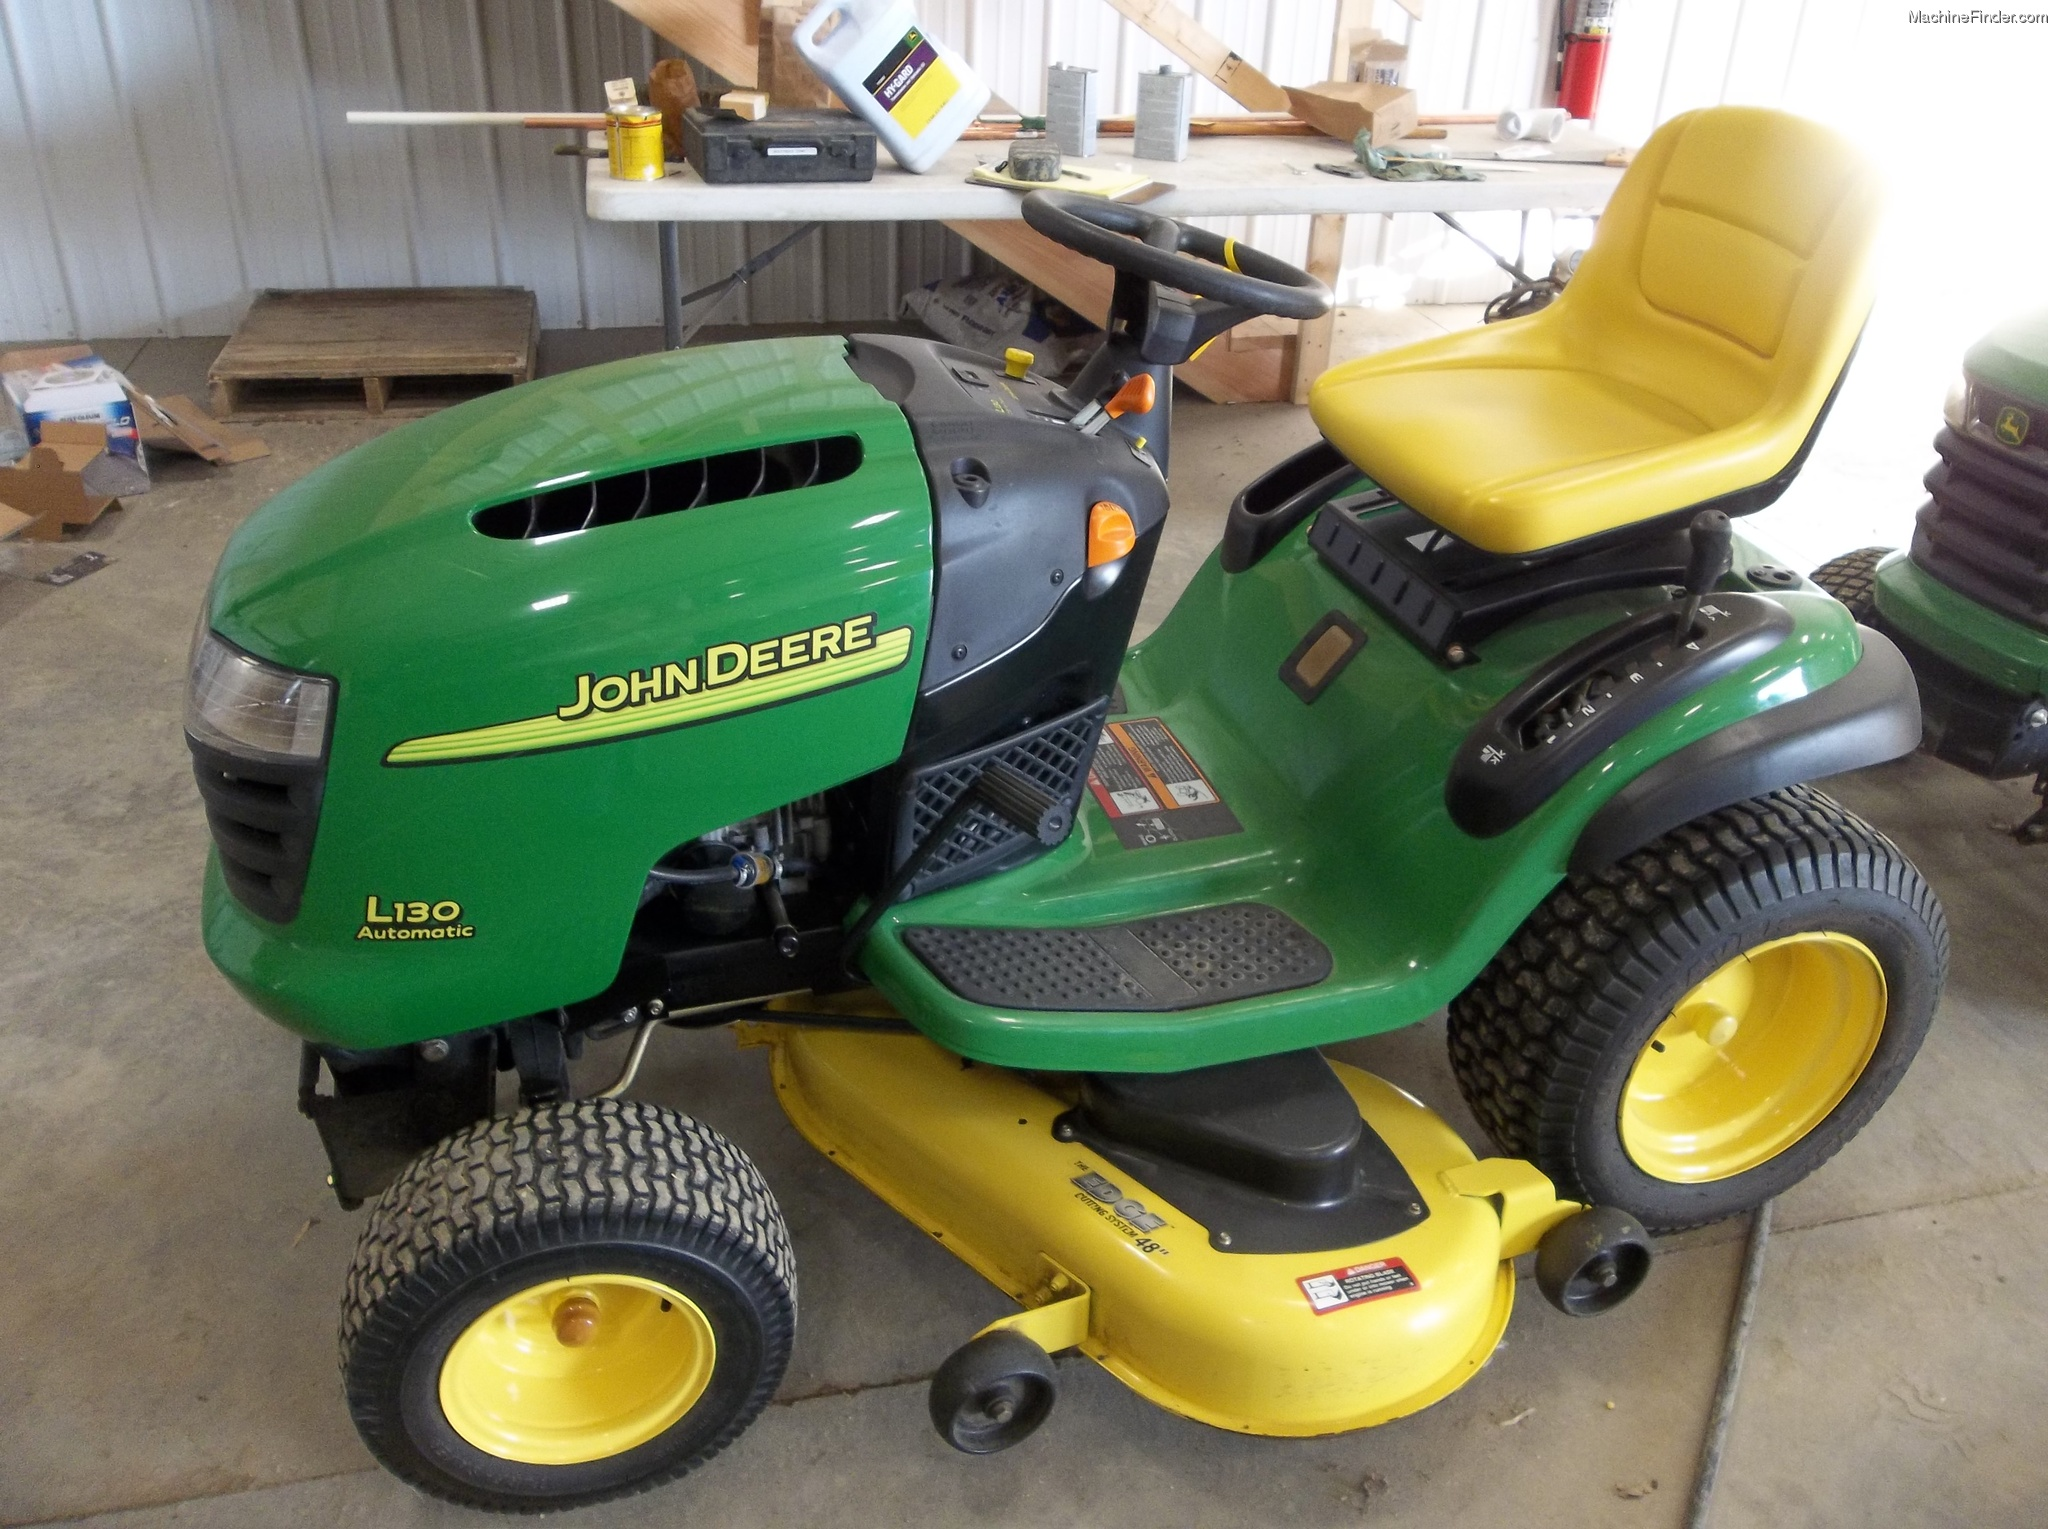 2005 John Deere L130 Lawn Amp Garden And Commercial Mowing